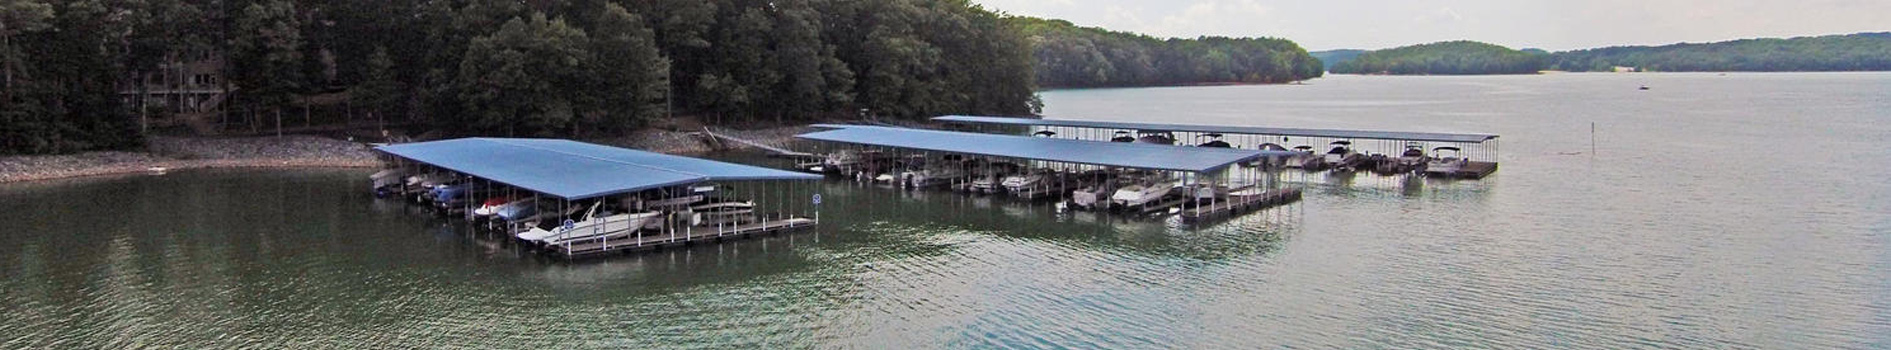 Docks on Lake Lanier